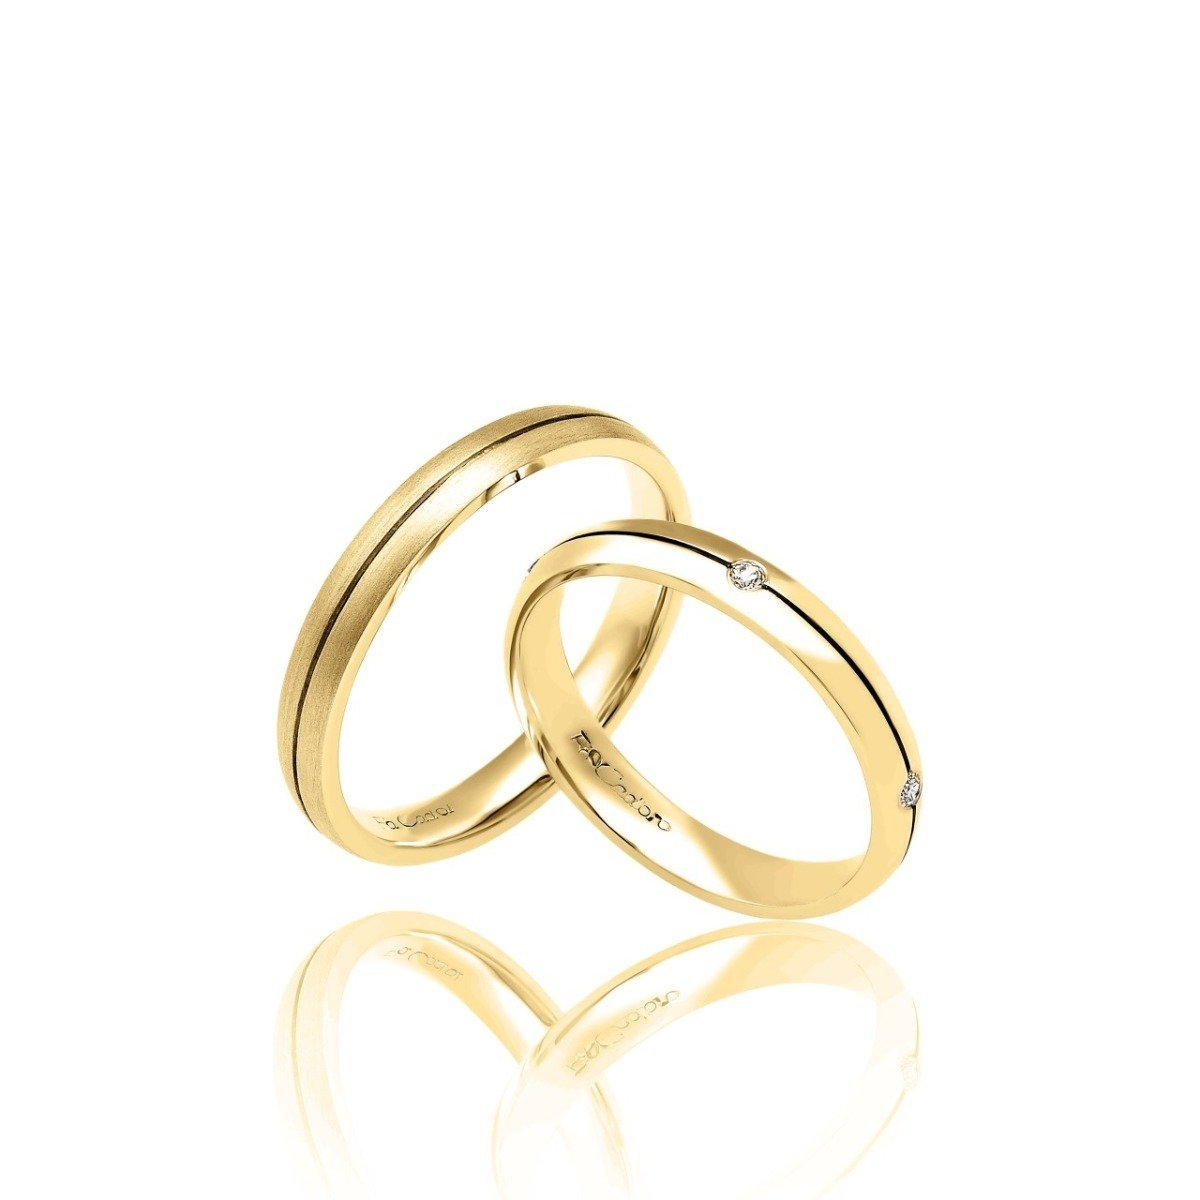 FaCad'oro WR-08 9ct and 14ct Gold Wedding Rings - Goldy Jewelry Store